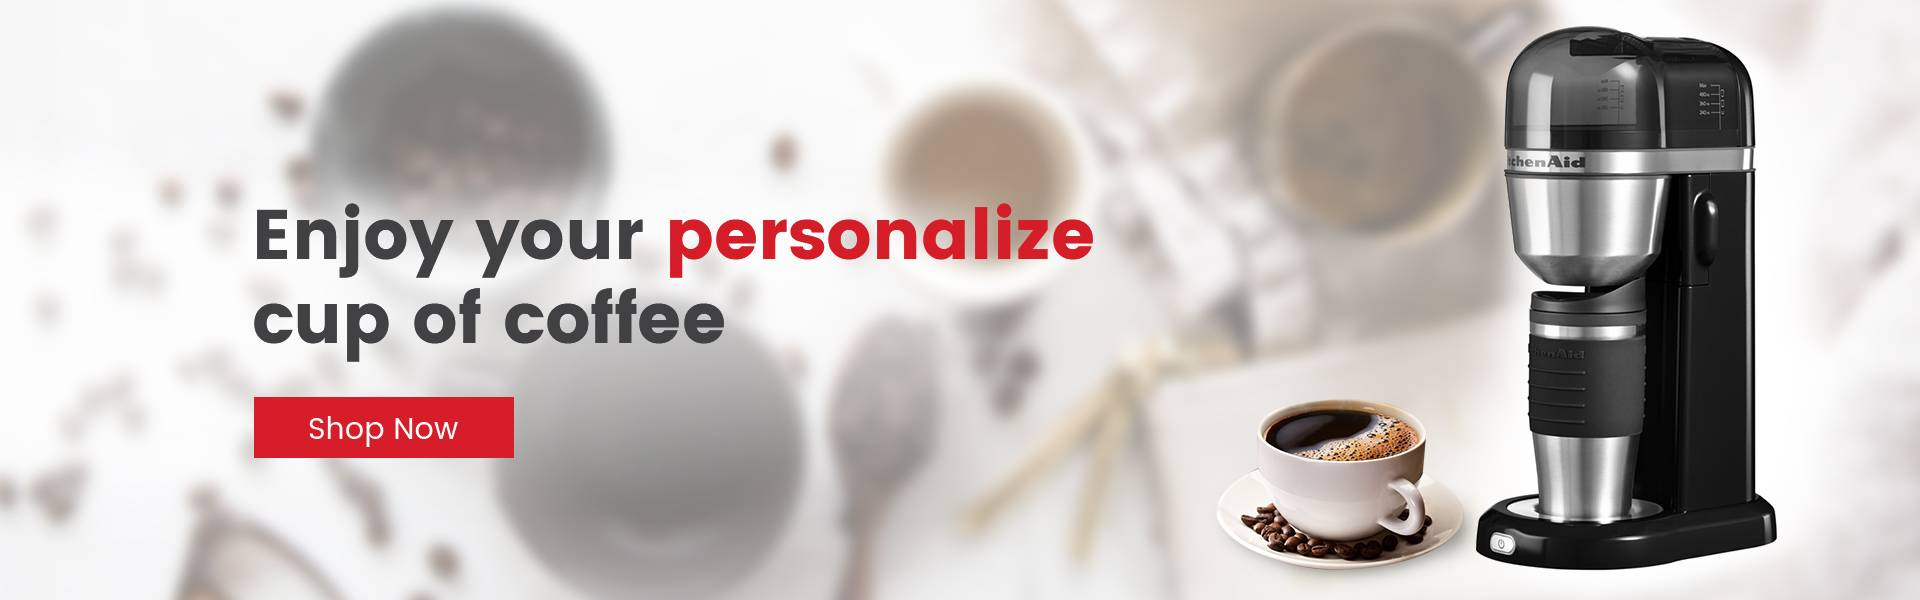 Enjoy your personalize cup of coffee